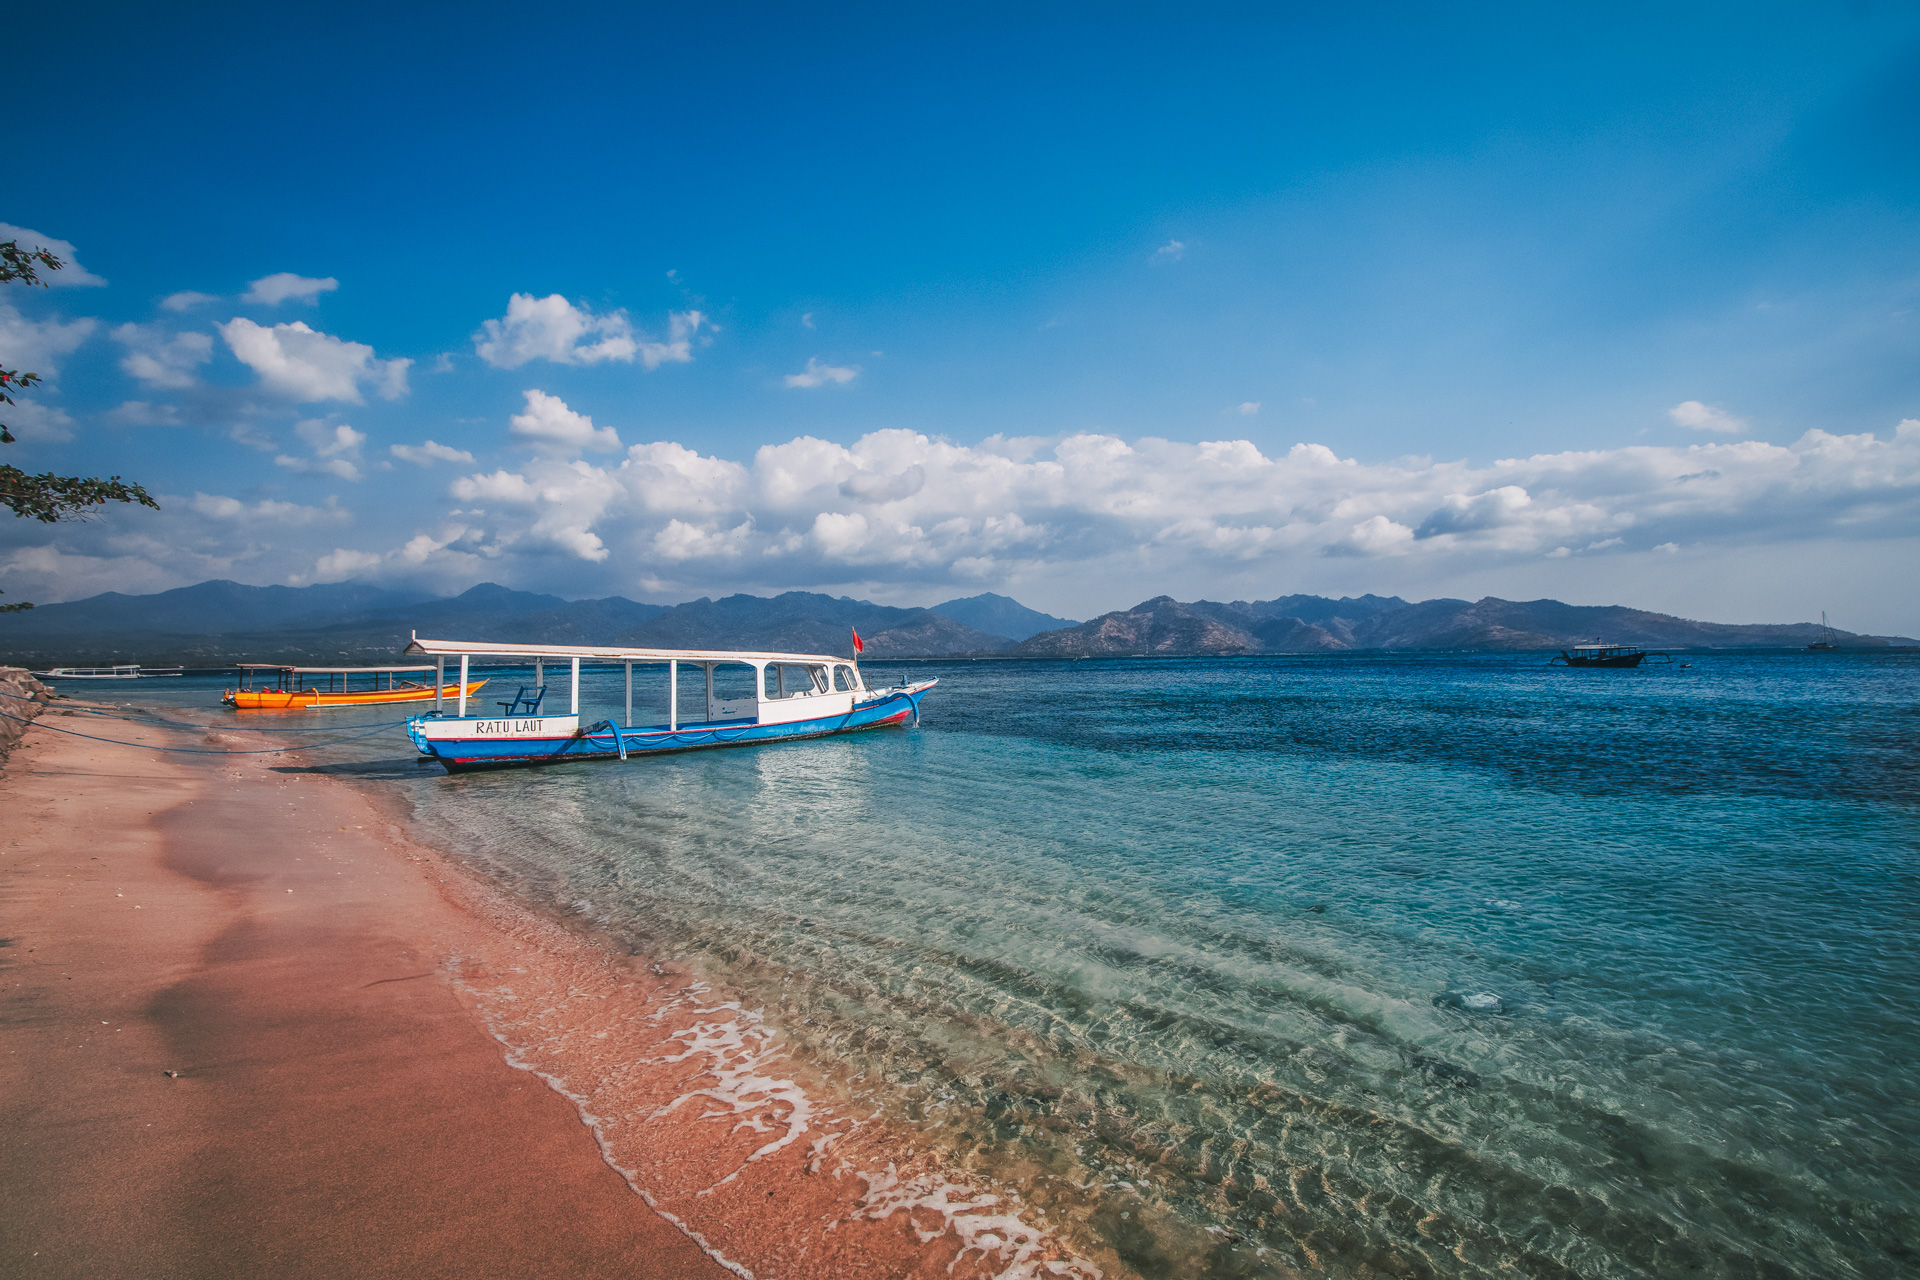 Fisher Boats, Gili Air. Is it safe to travel to the Gili Islands after the 2018 earthquakes?